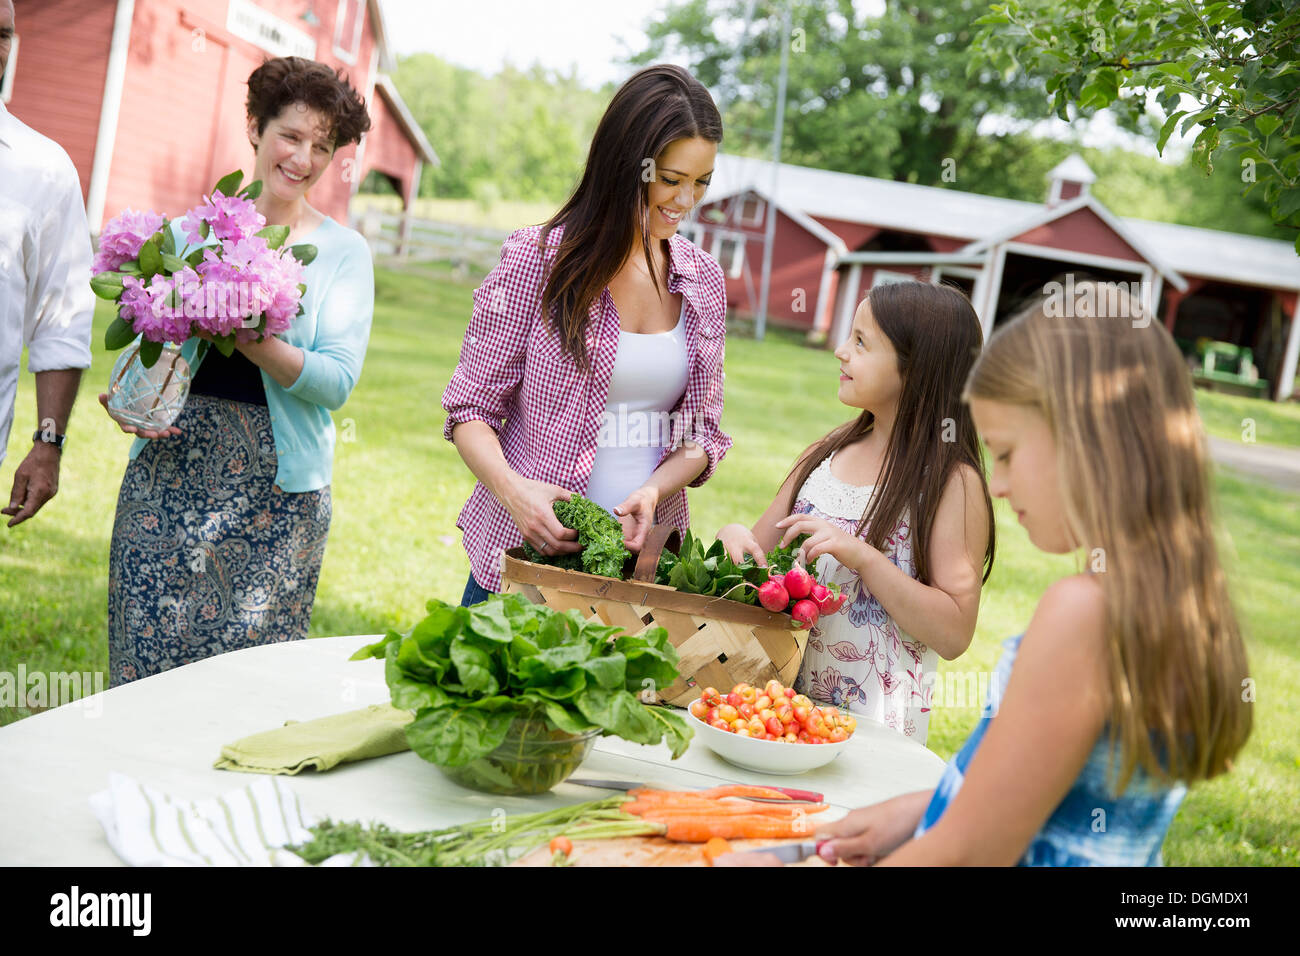 Family party. parents children around table preparing meal fresh picked salads, fruits vegetables - Stock Image